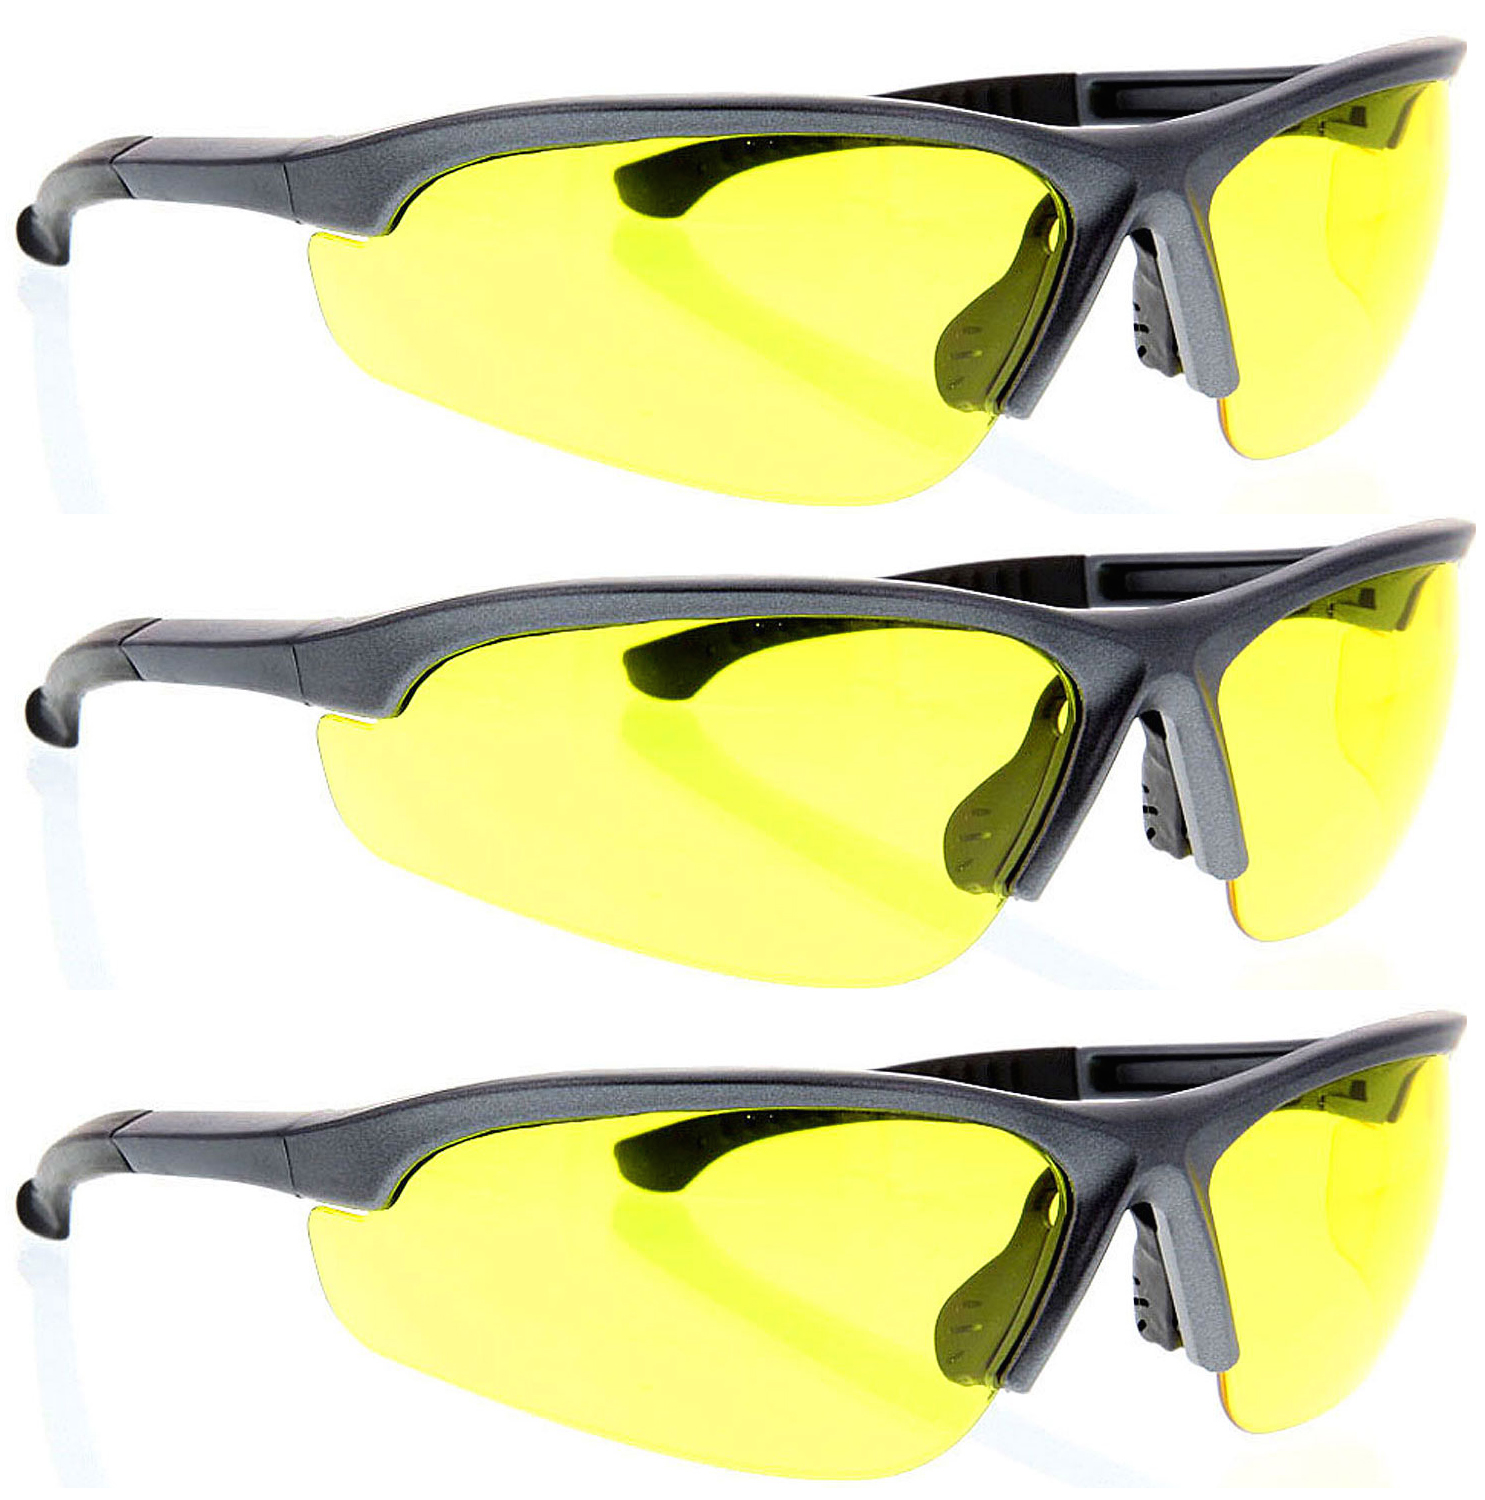 3 Pairs lot CLEAR SAFETY GLASSES Z87 goggles protective eyewear wholesale hega